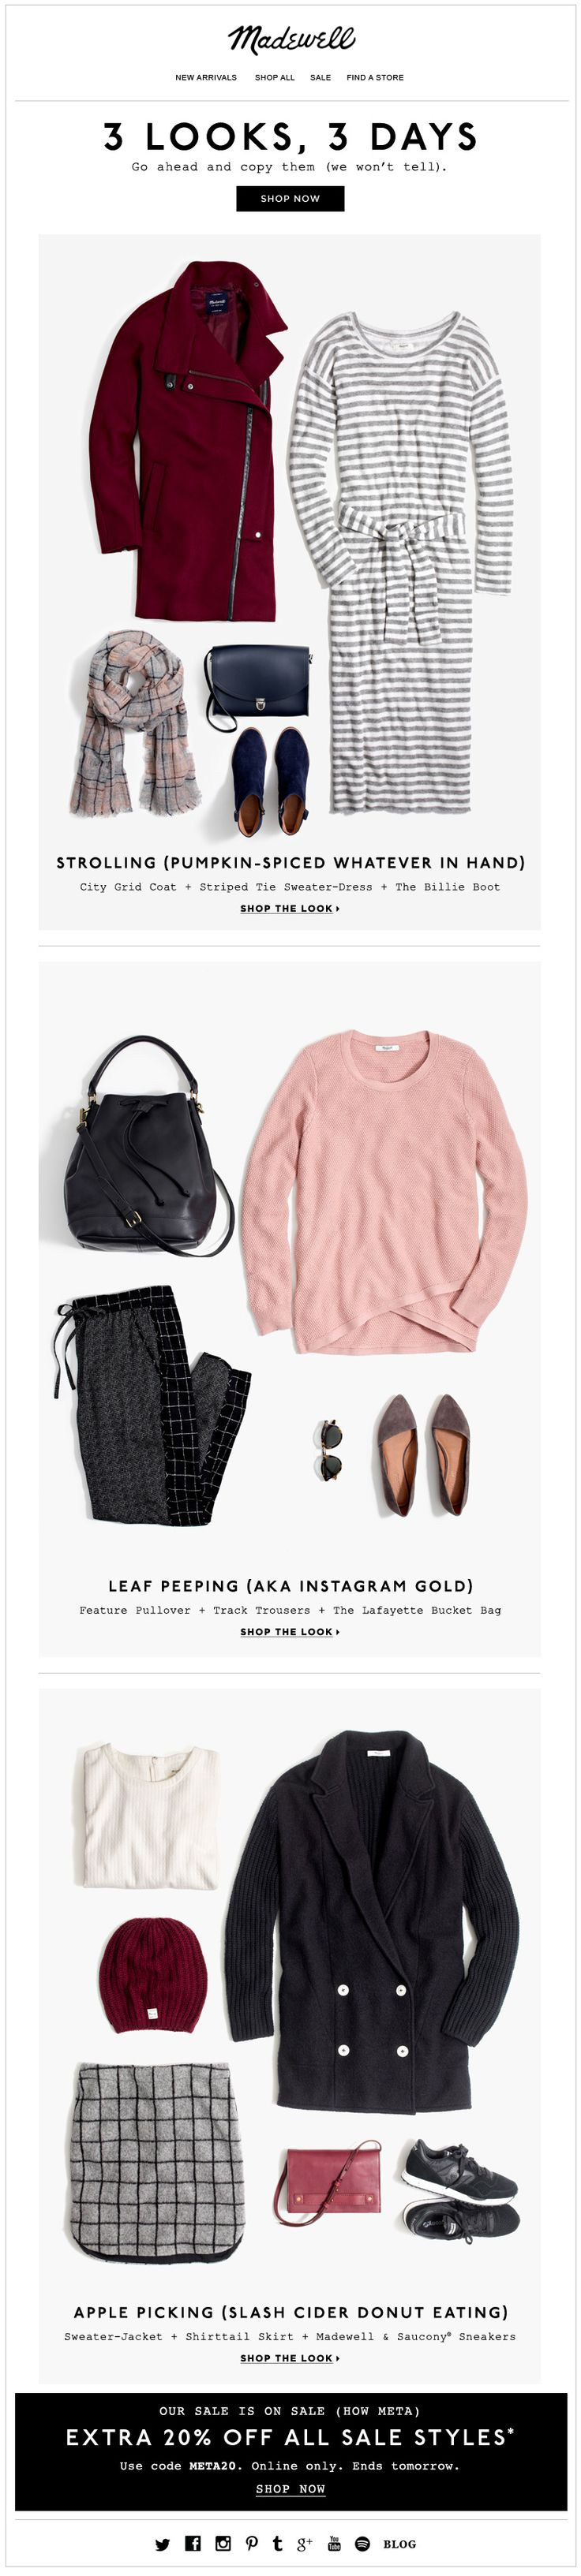 Madewell Fall Looks email. Subject line, 3 cozy looks, 3 things to do in them